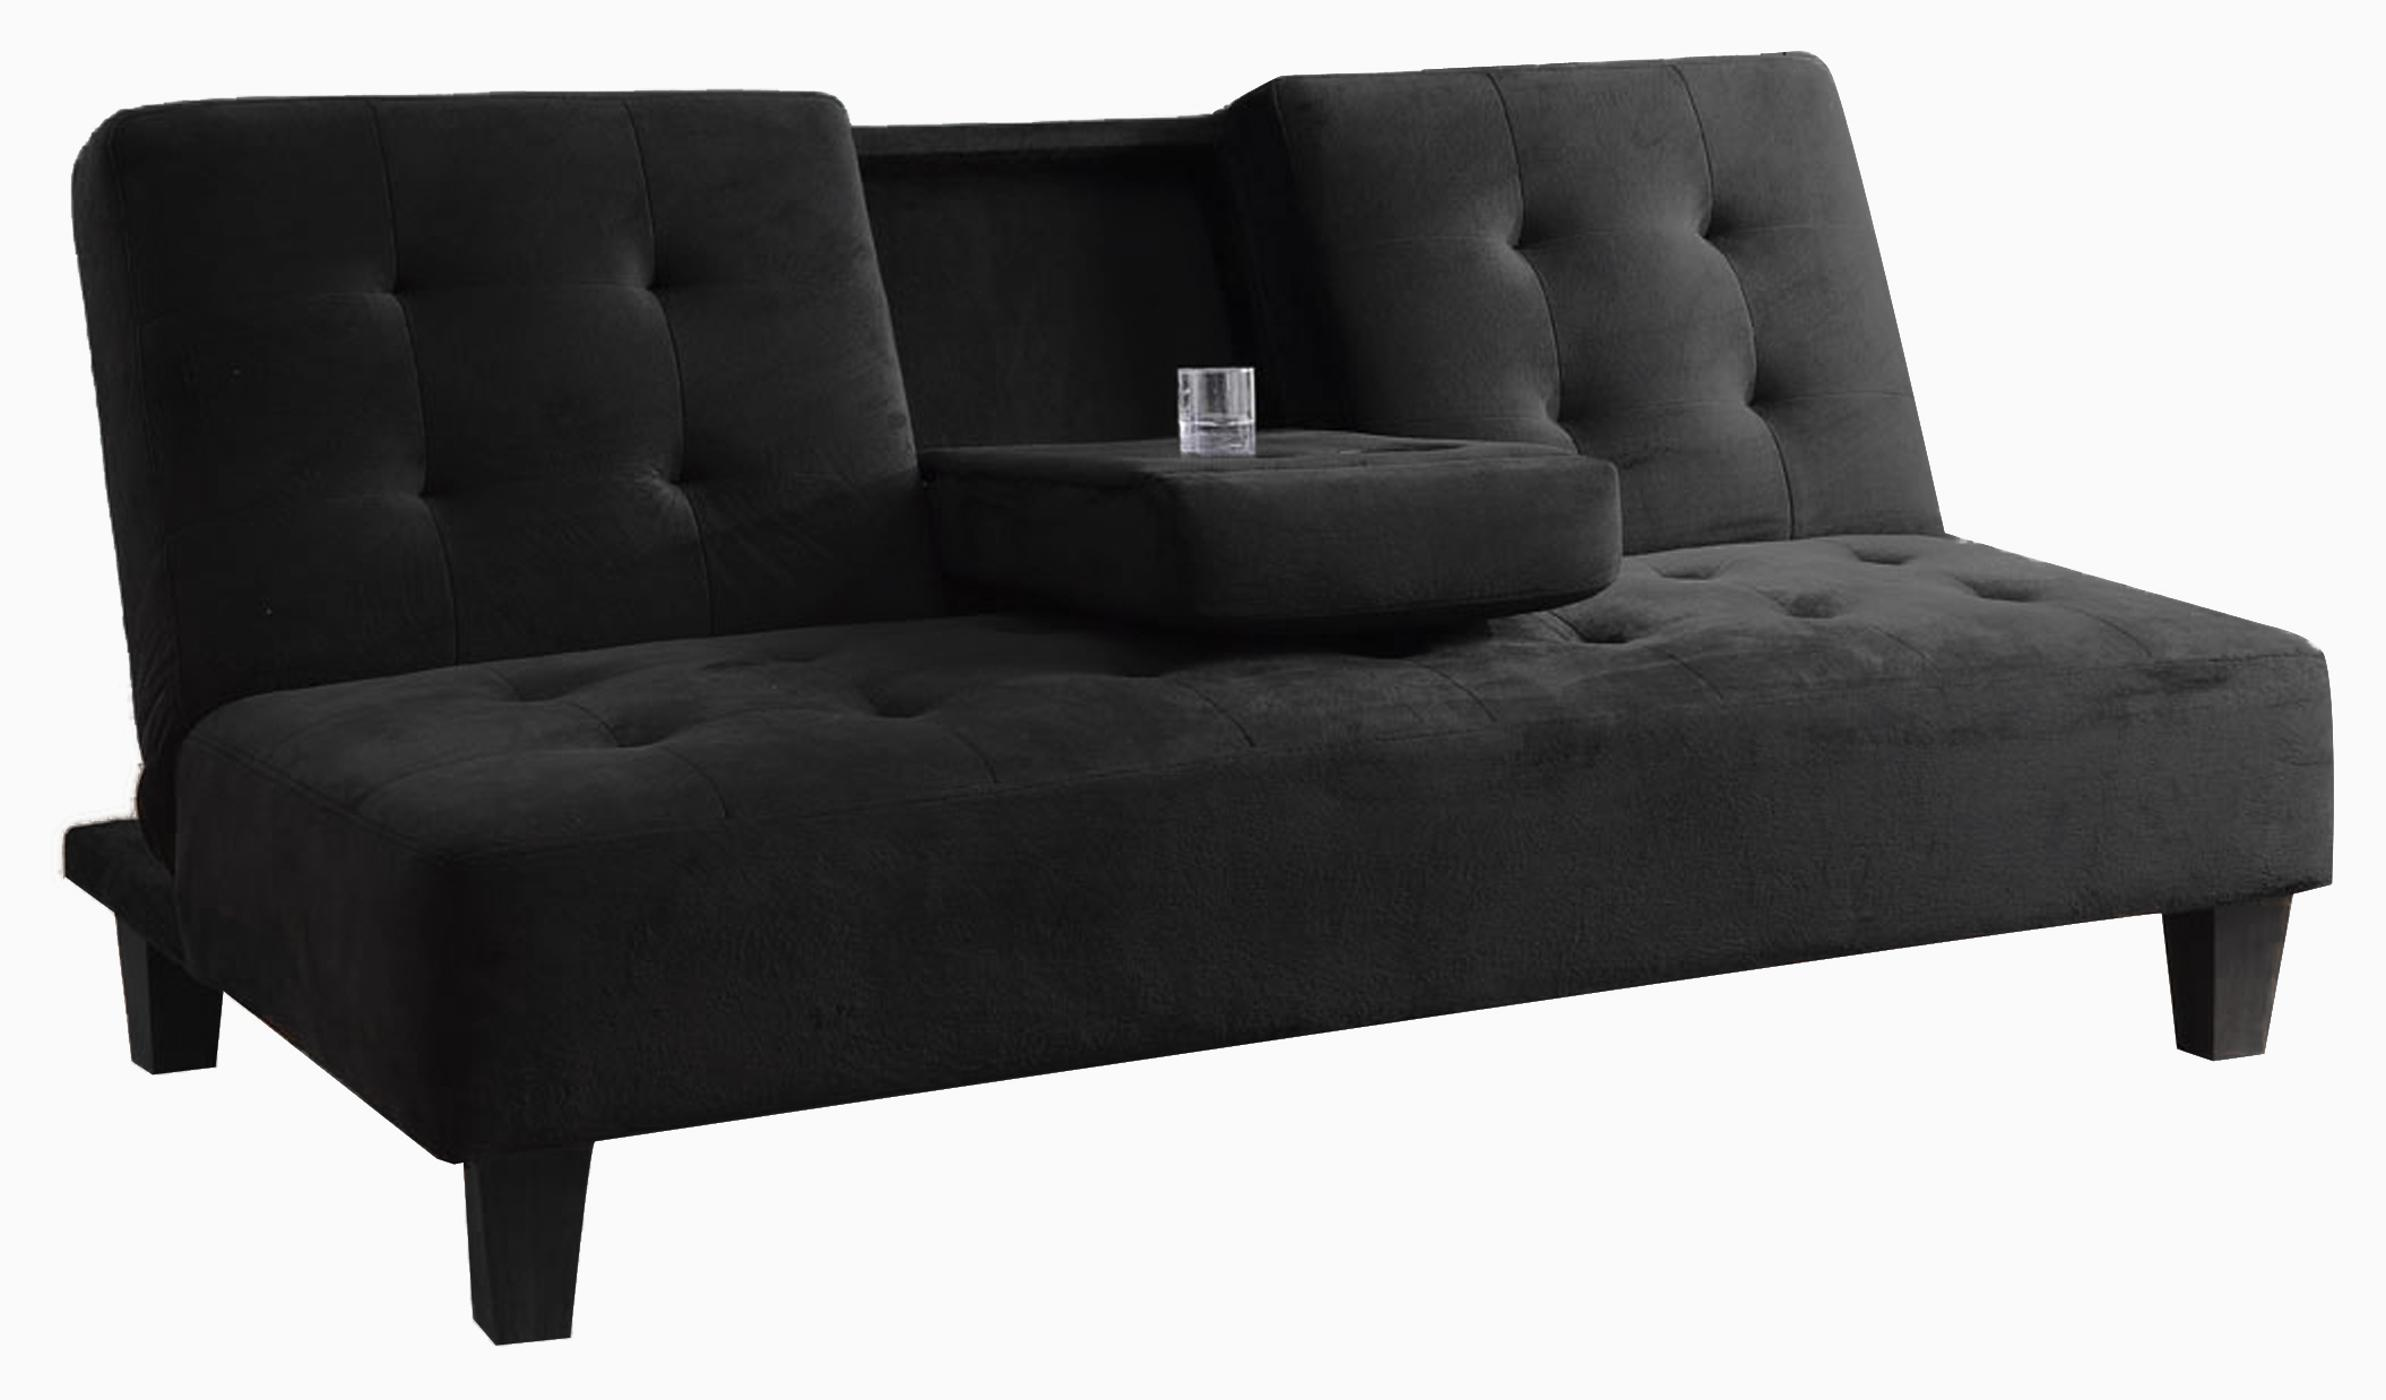 Madrid Futon Sofa Bed With Cup Holder In Black Com